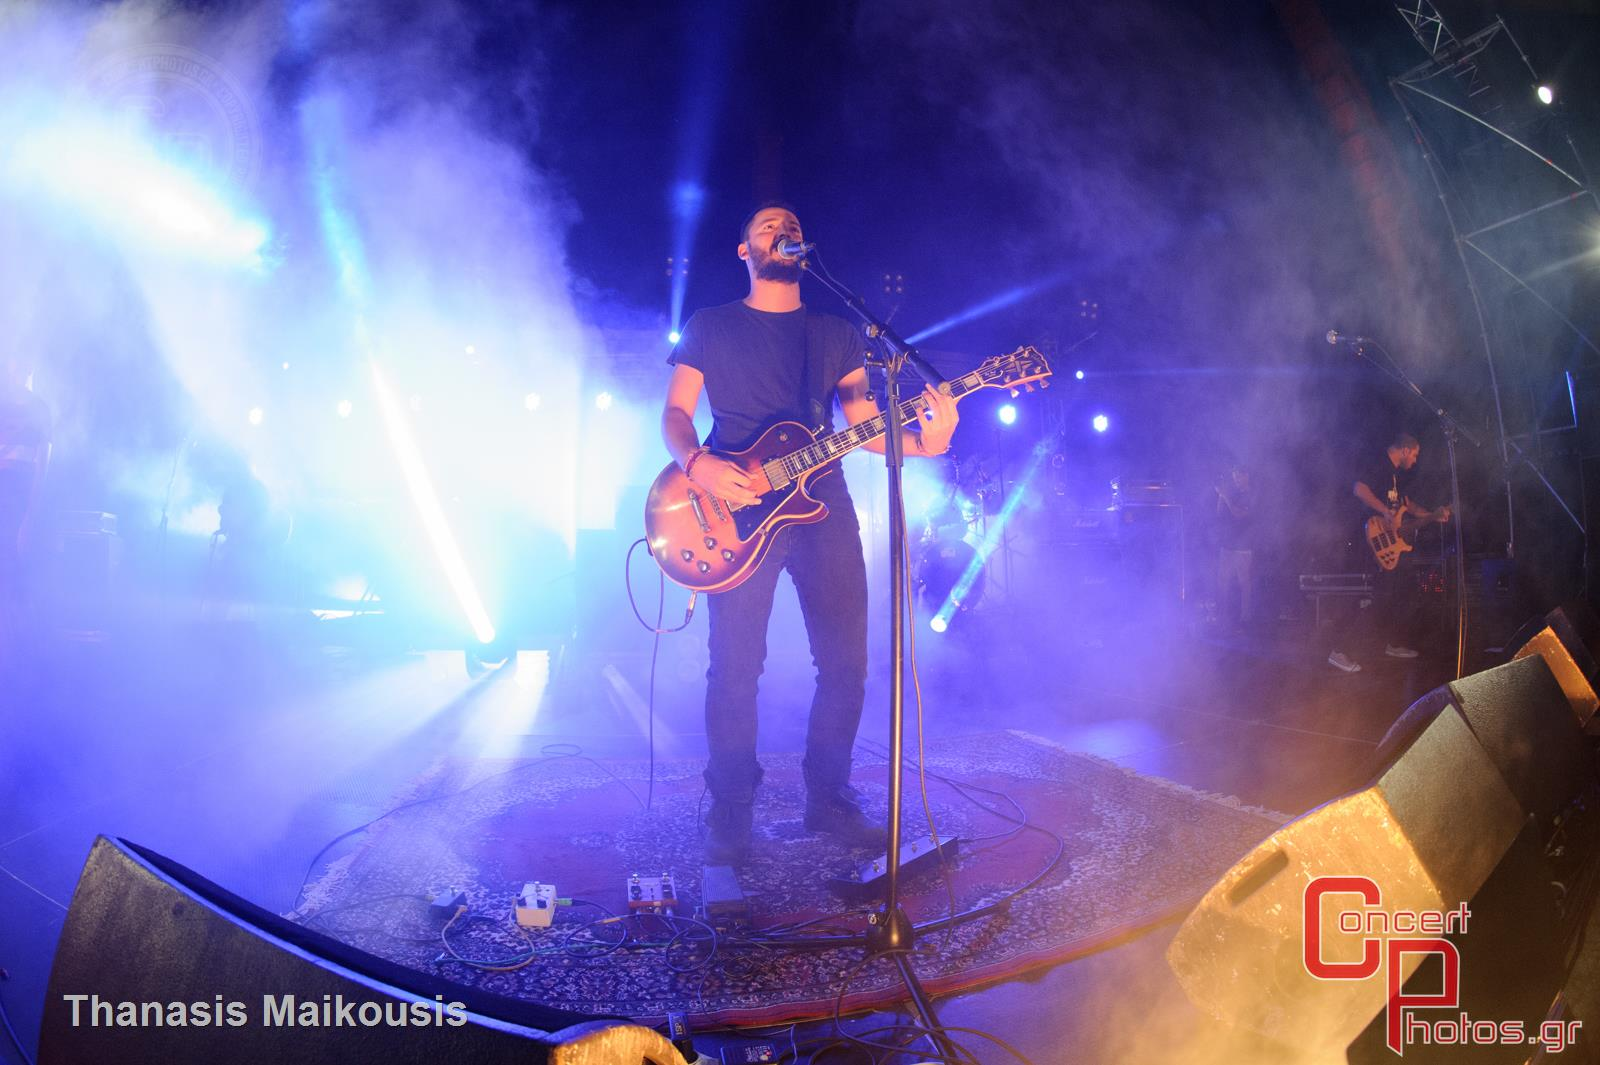 VIC-VIC-Technopolis photographer: Thanasis Maikousis - concertphotos_20150925_21_06_09